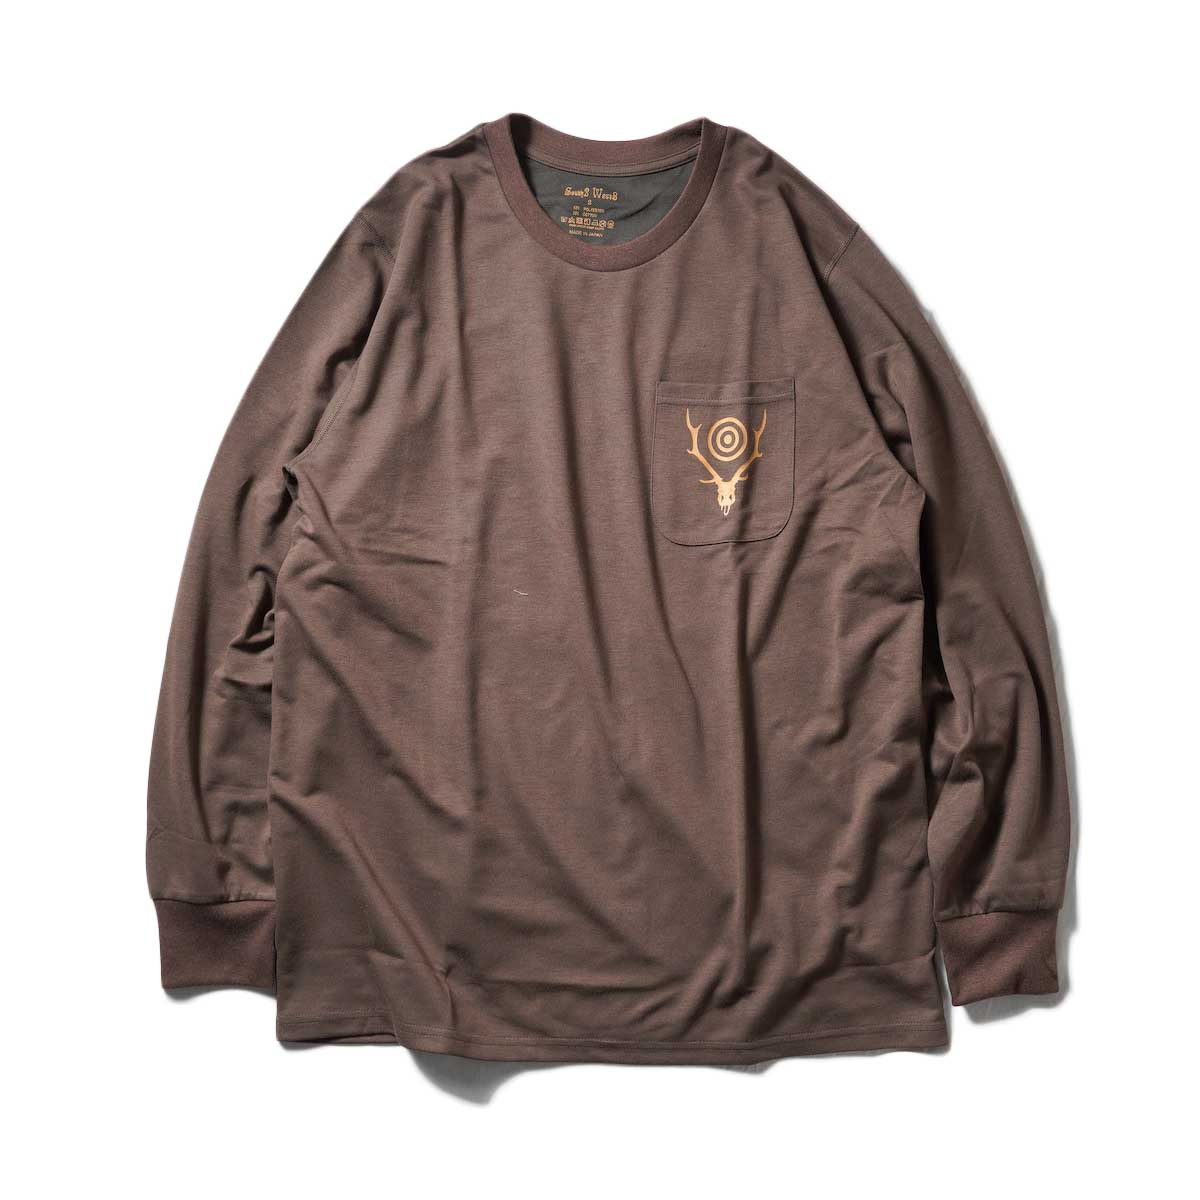 South2 West8 / L/S Round Pocket Tee -Circle Horn (Brown)